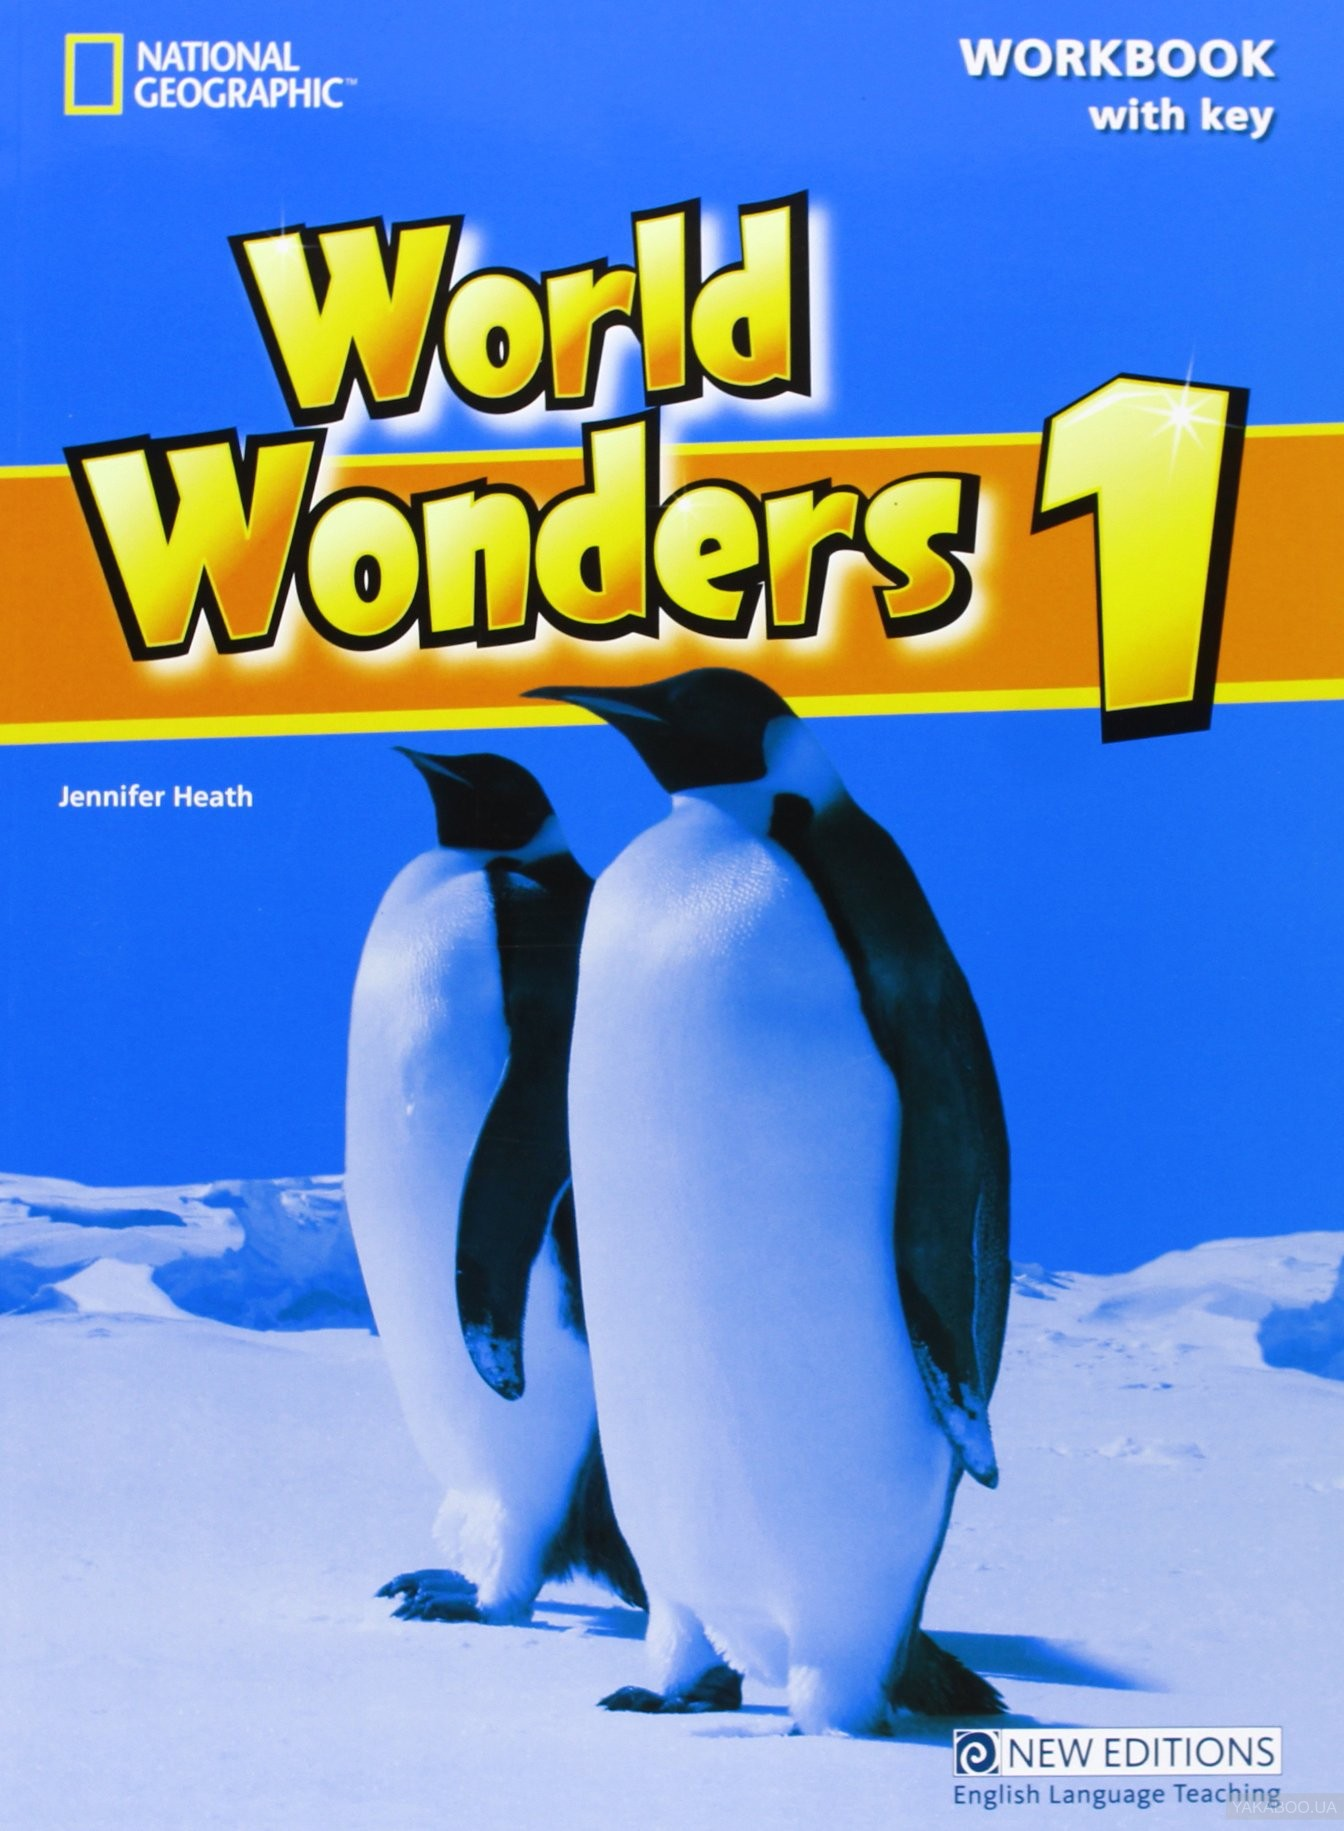 World Wonders 1. Workbook with Key фото